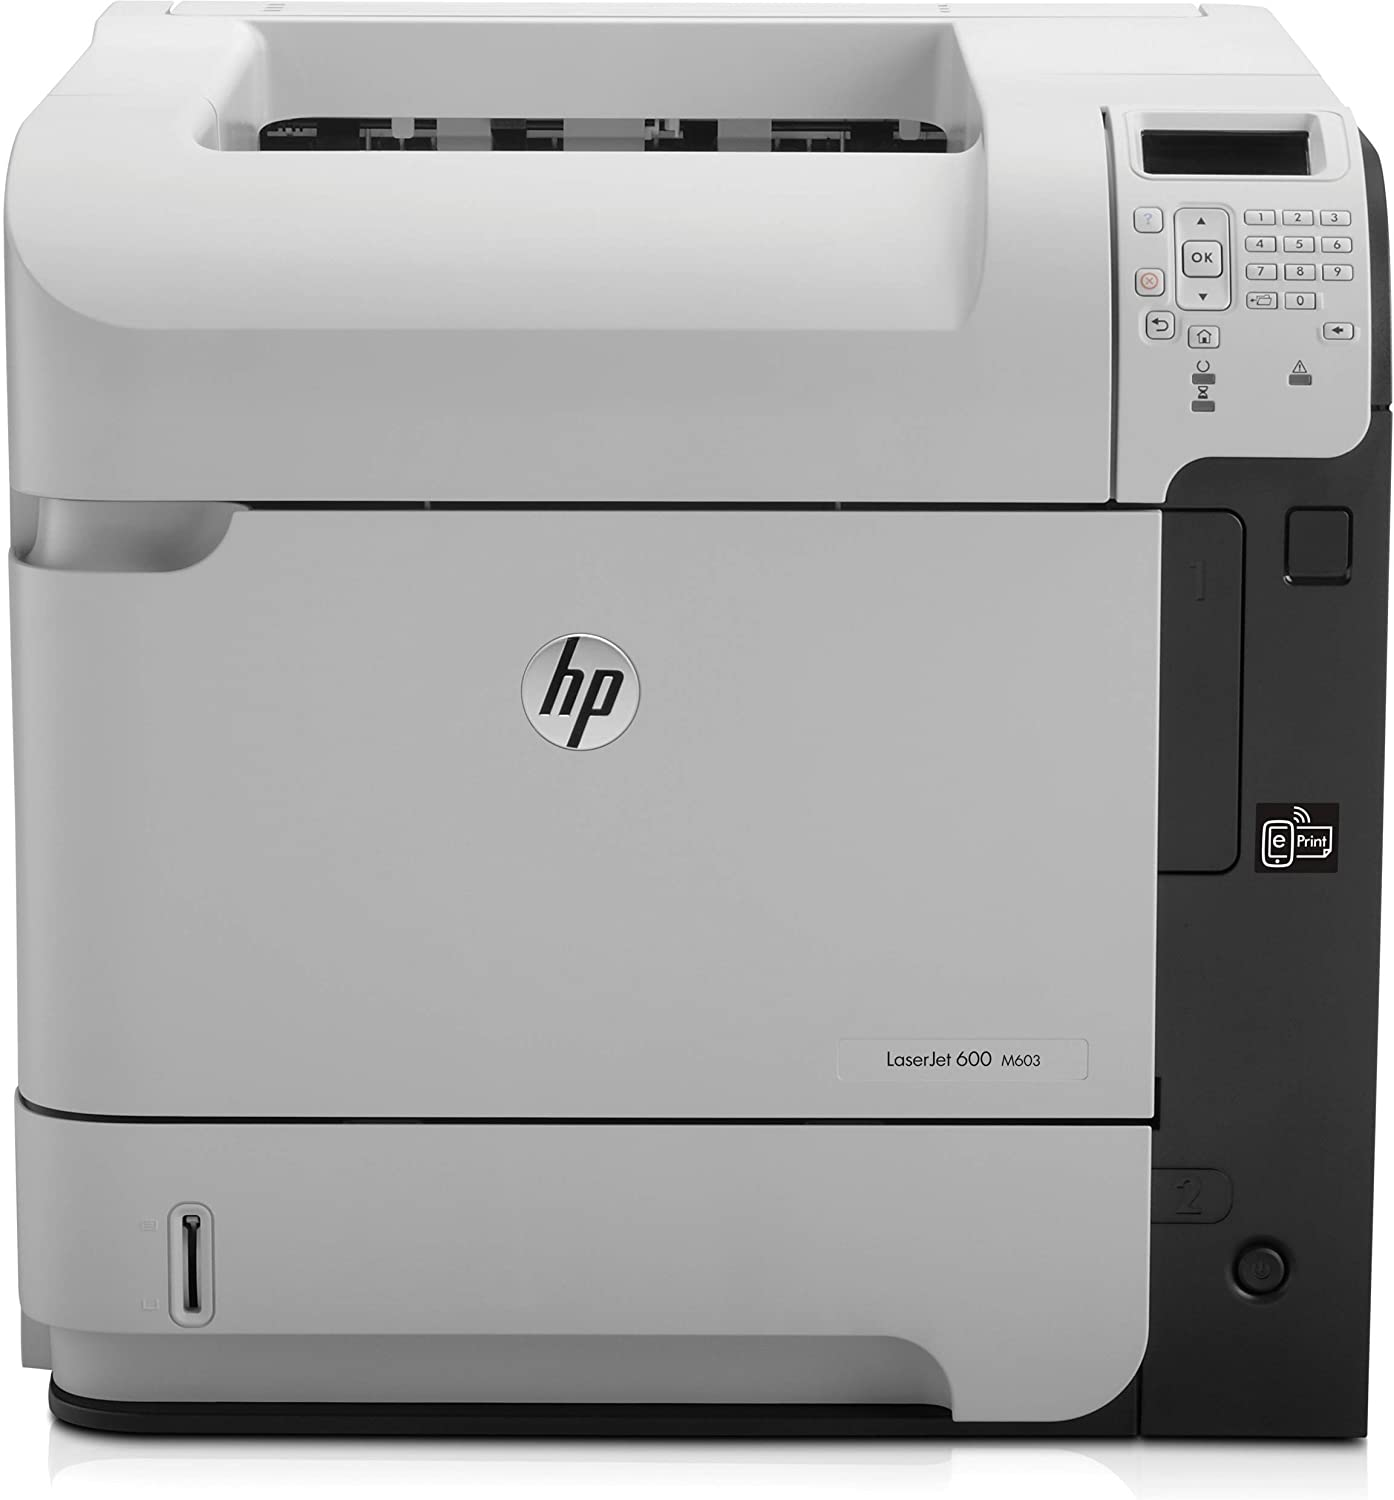 Renewed HP LaserJet 600 M603DN M603 CE995A Laser Printer with toner & 90-Day Warranty CRHPM603DN